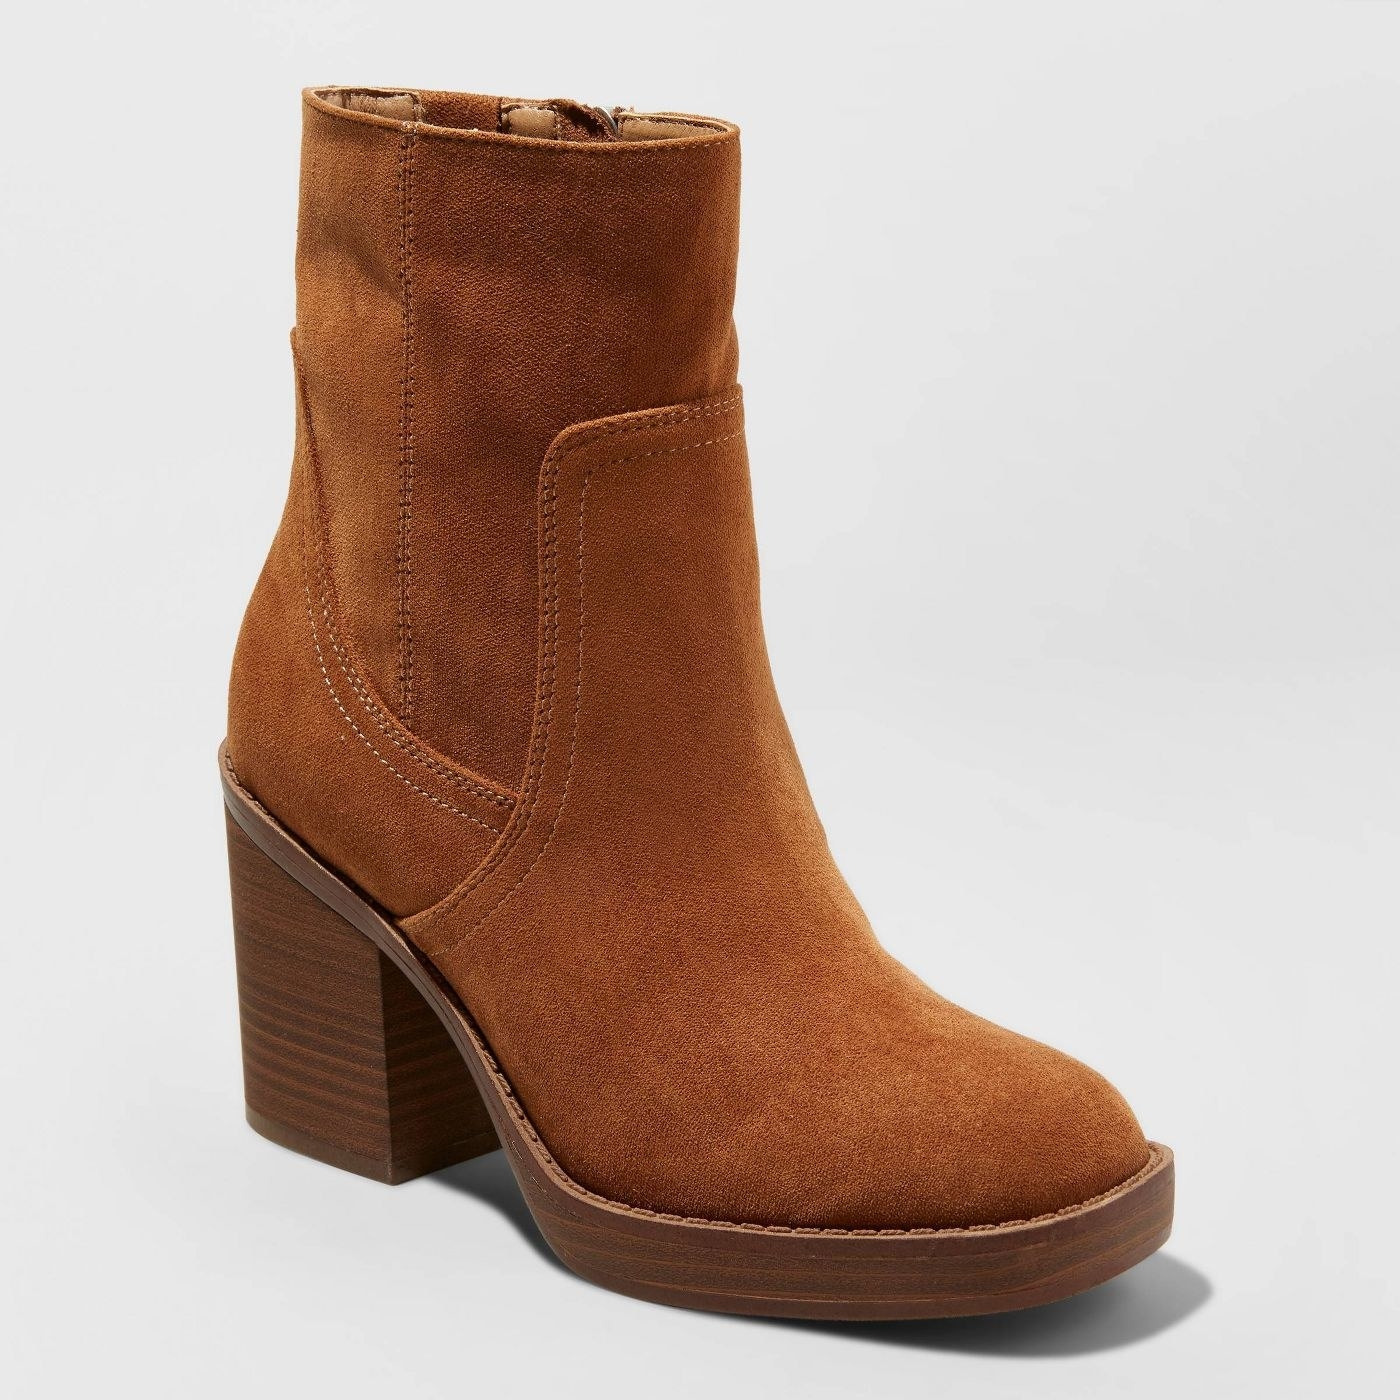 tan platform booties with a square toe